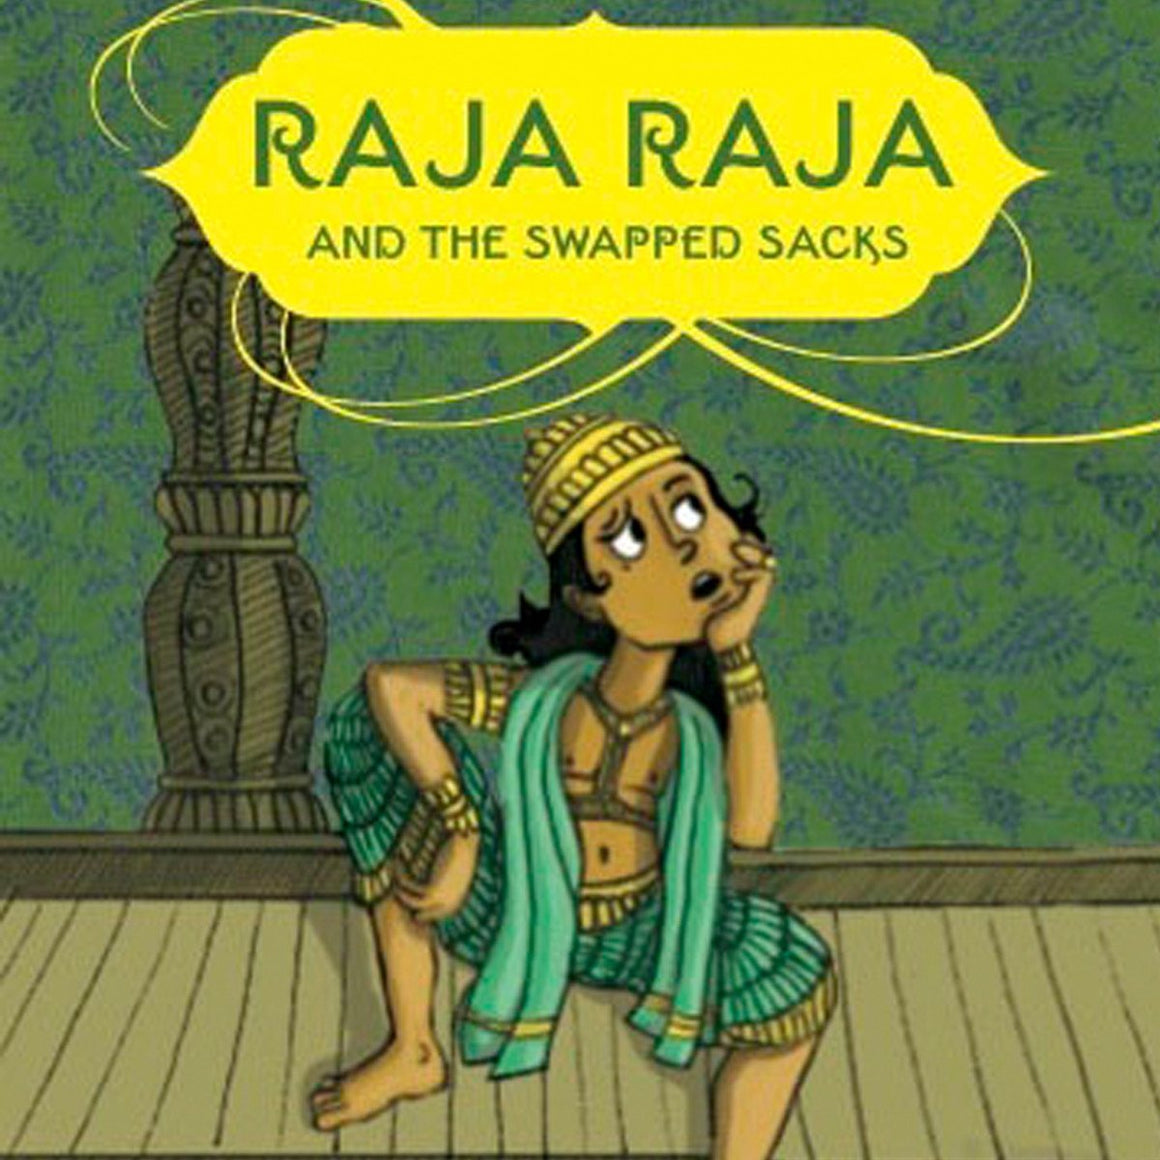 Buy Natasha Sharma's Raja Raja and the Swapped Sacks children's & kids story book online - Shumee